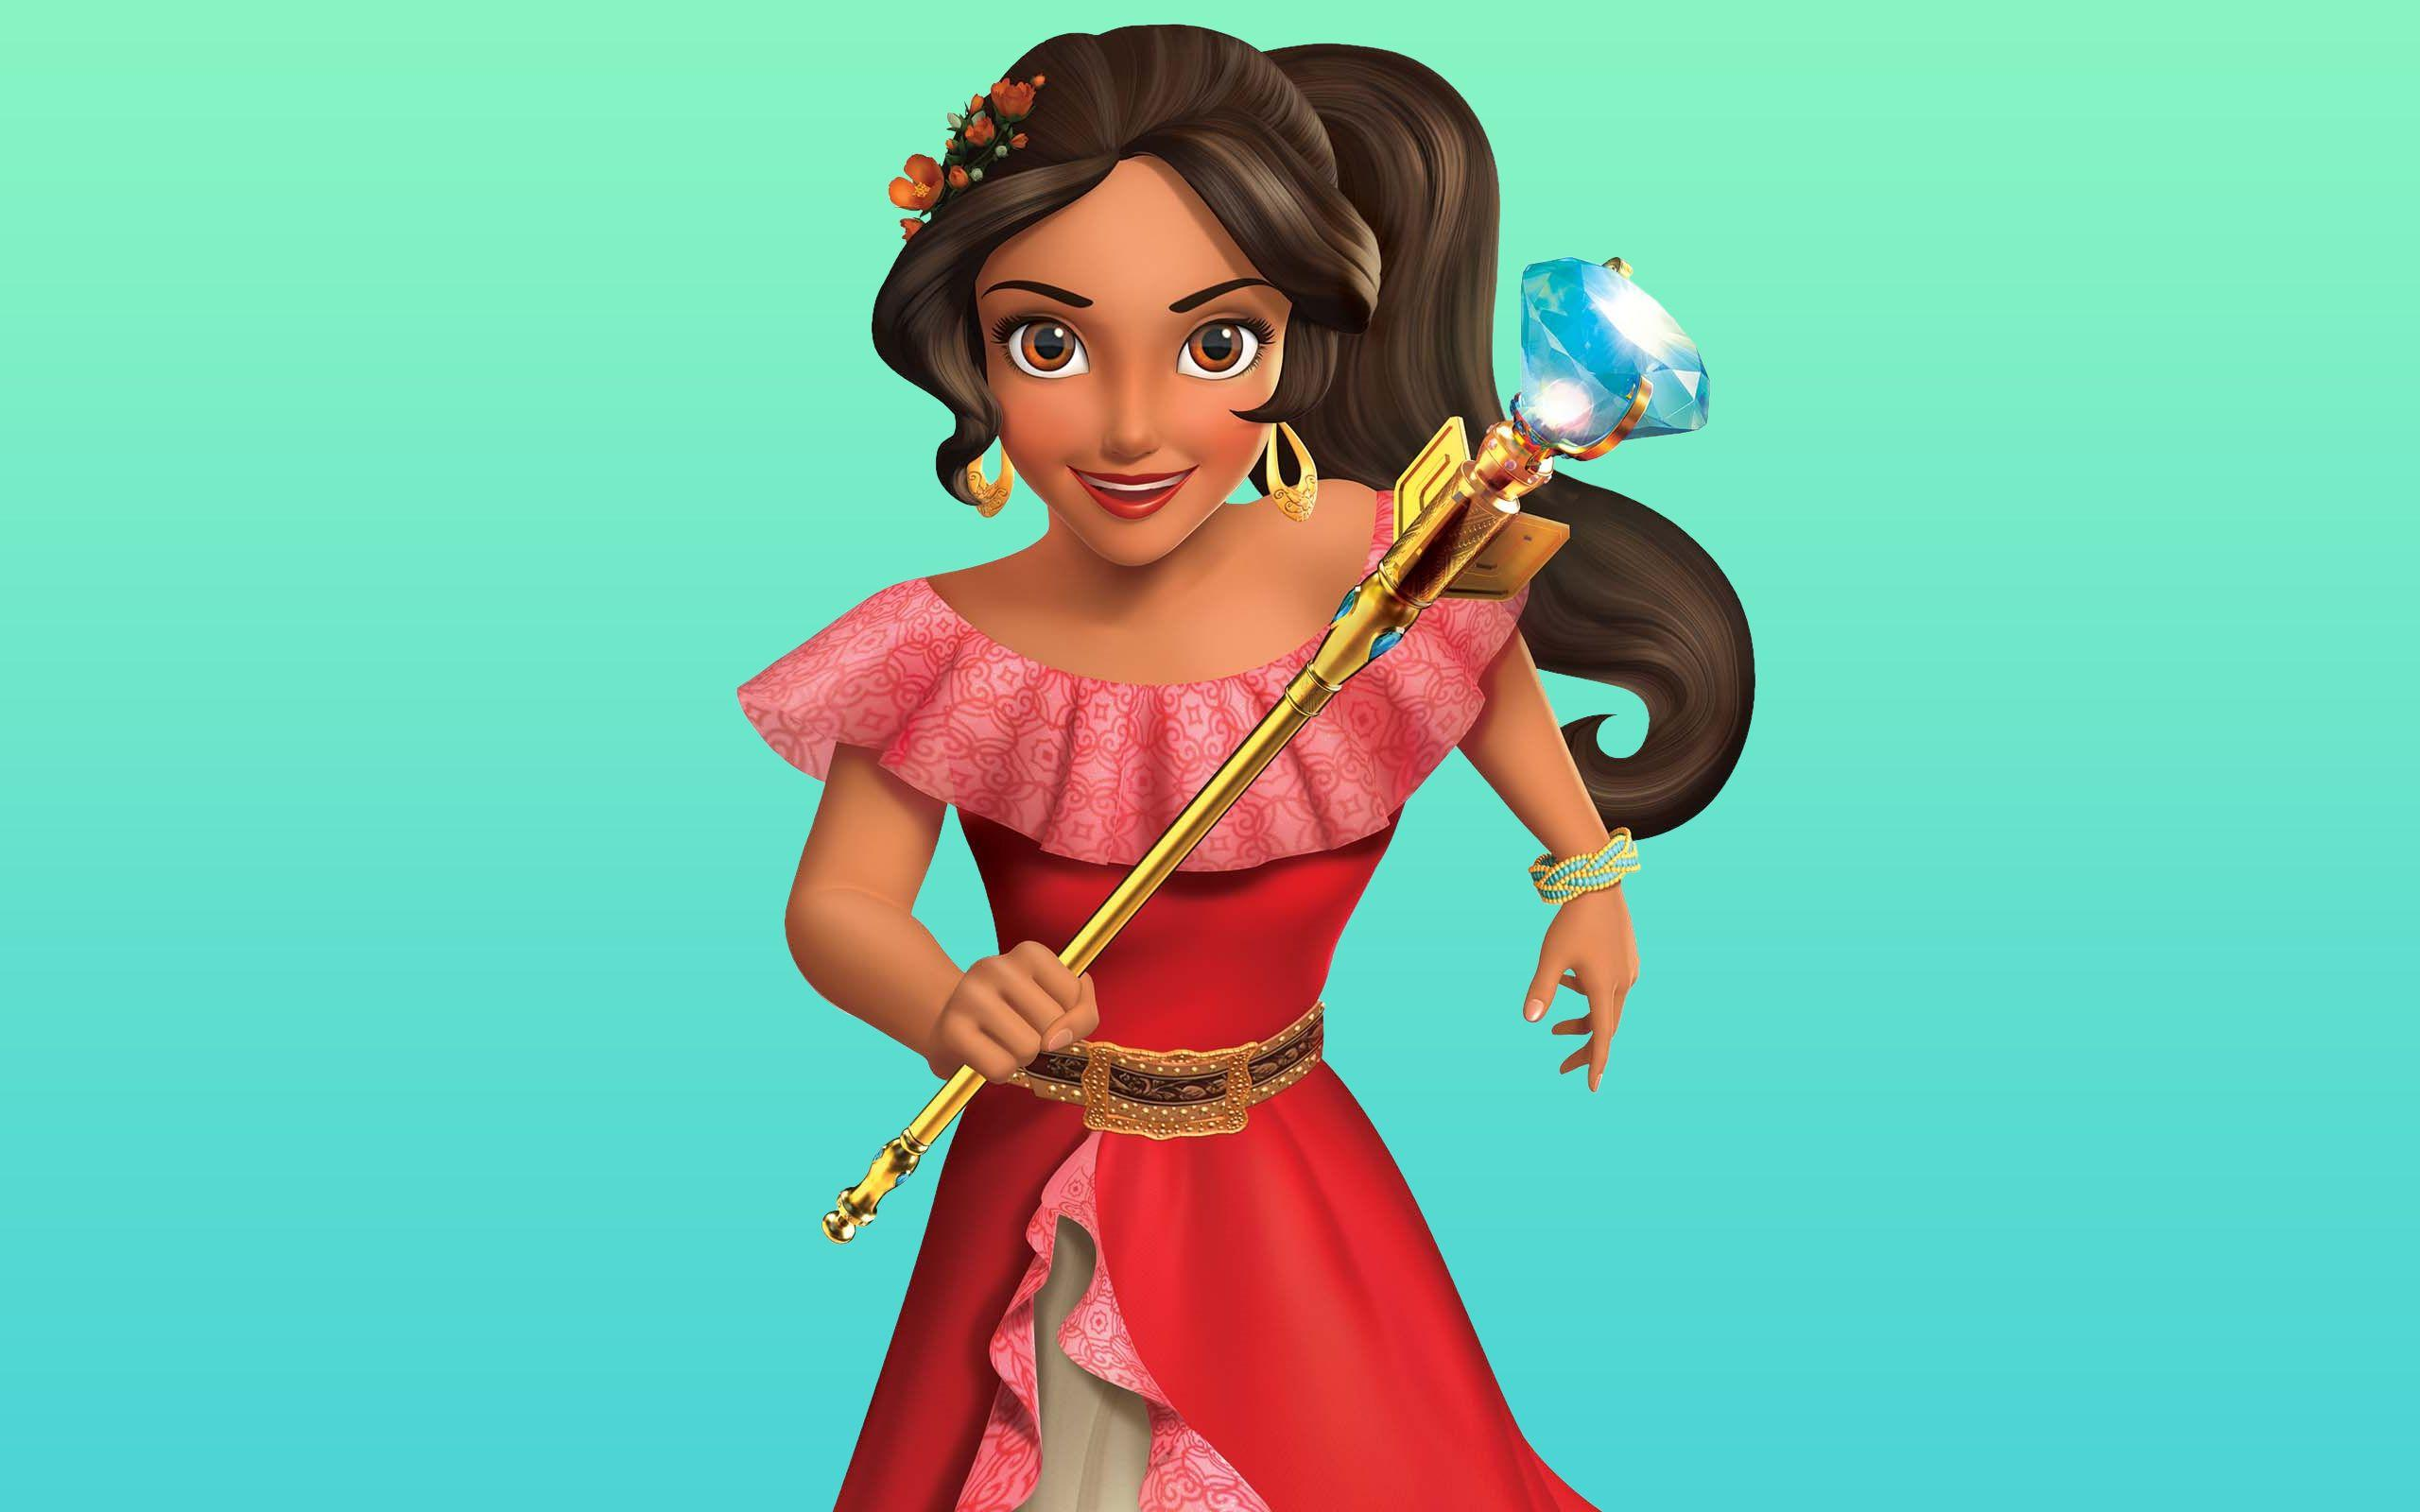 Elena of Avalor: Big wallpapers with main characters